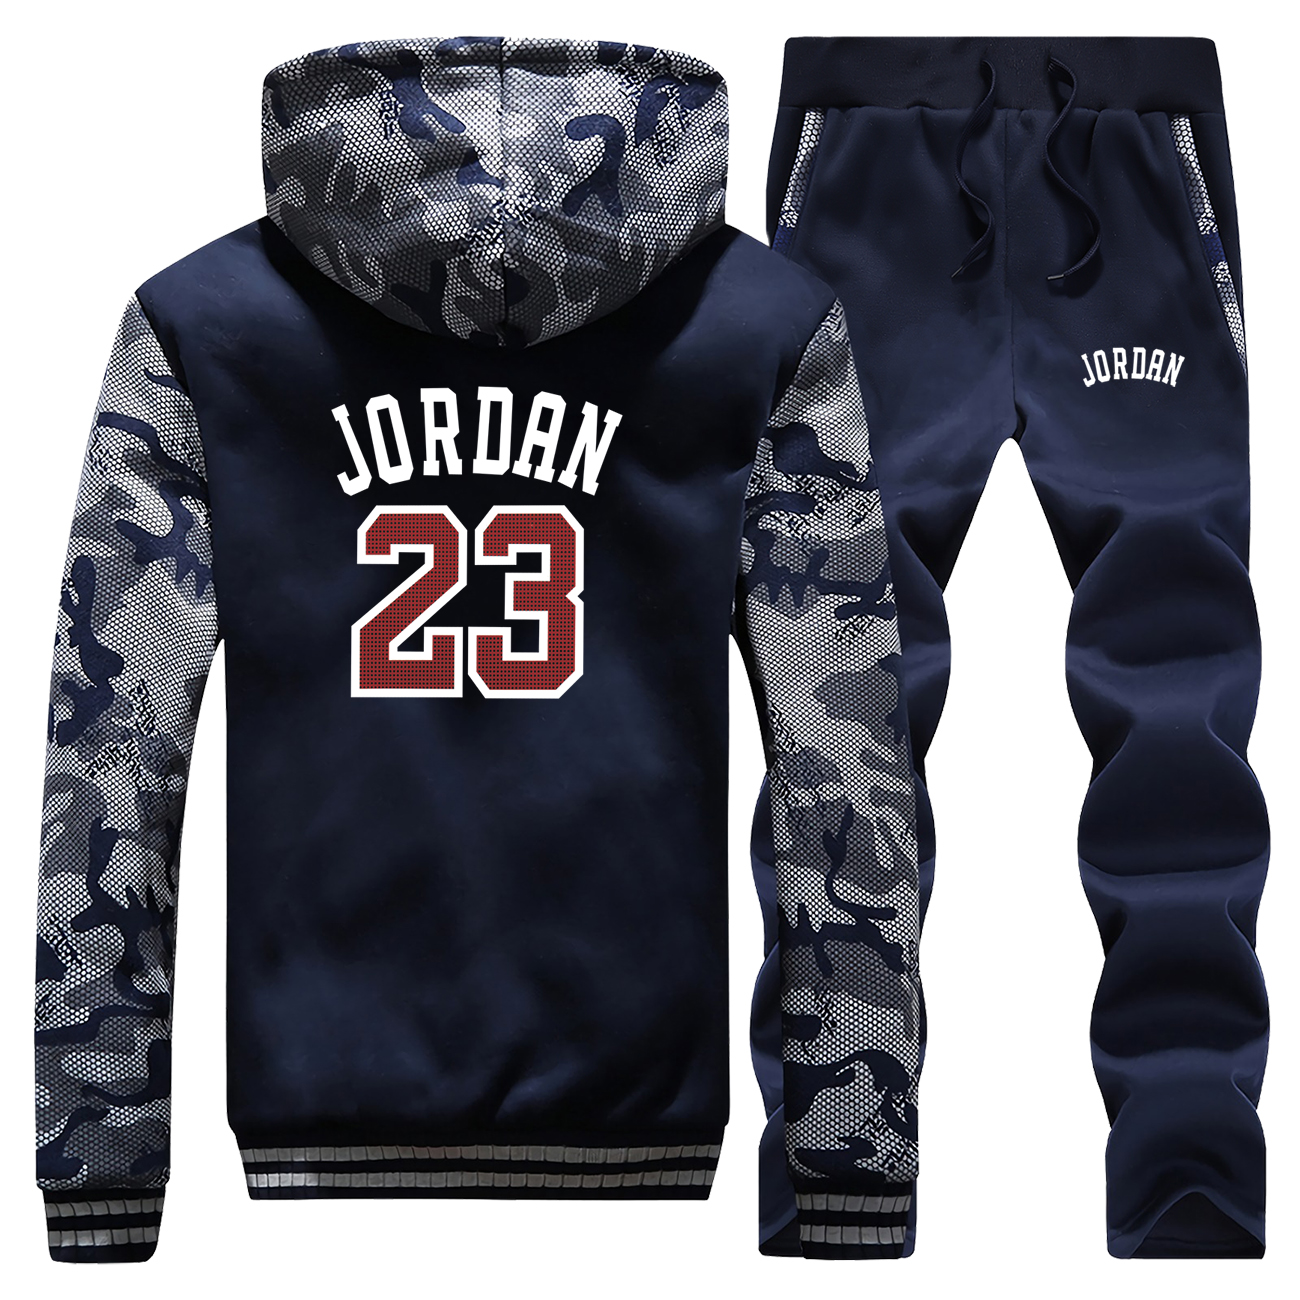 Jordan 23 Printed Mens Jacket+SweatPants 2 Piece Set Men Hoodies Thick Warm Zipper Coats Autumn Winter New Tracksuit Male Hoodie